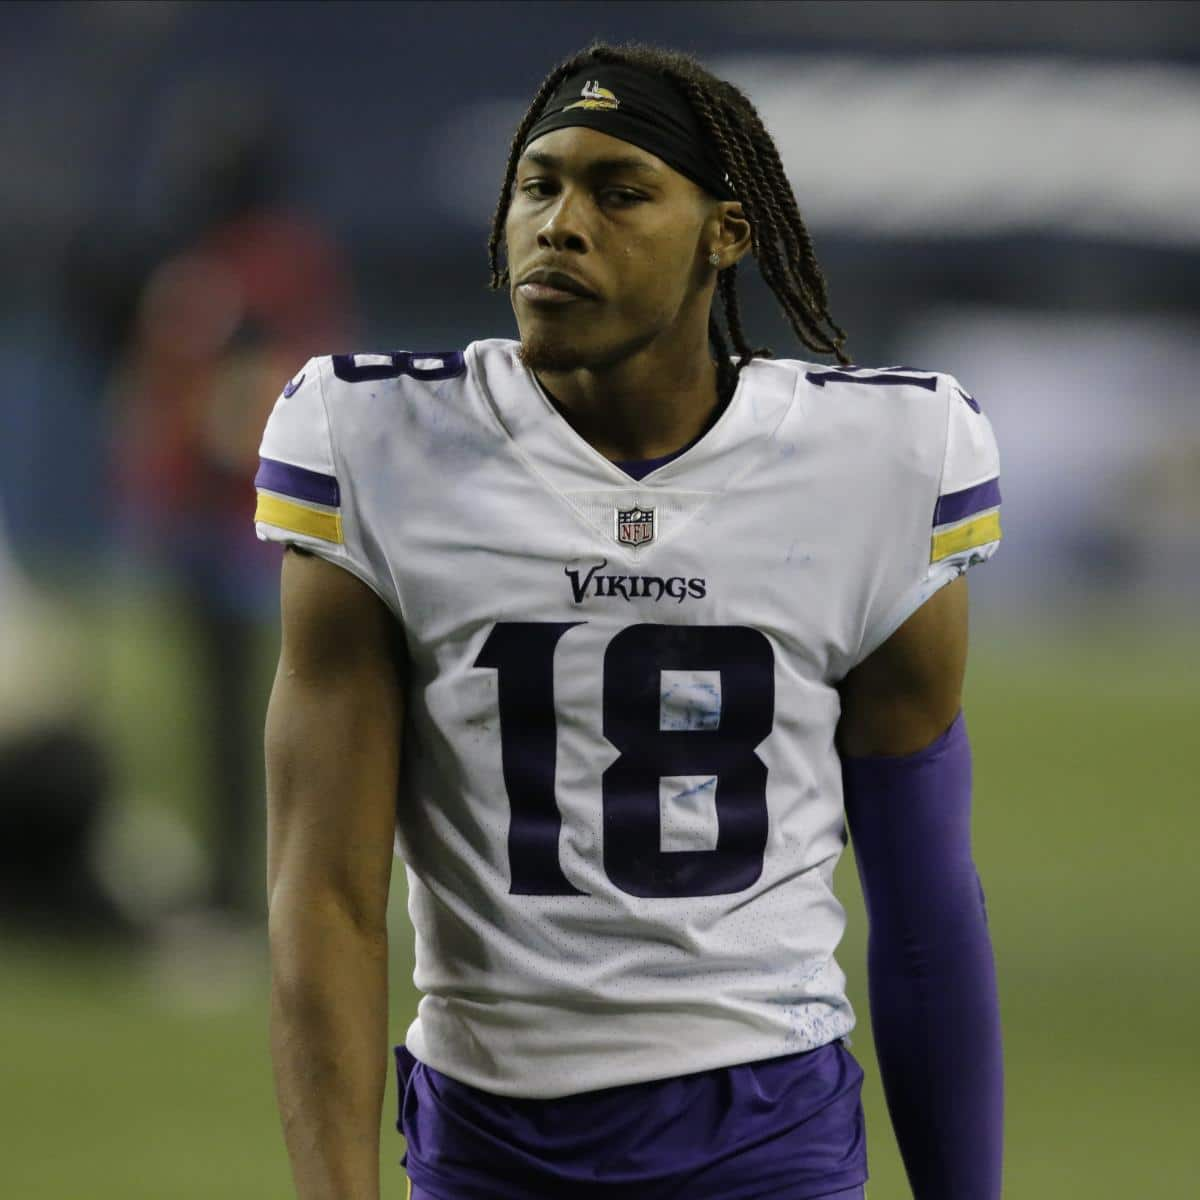 justin-jefferson-takes-shot-at-eagles-positively-chuffed-to-be-with-vikings.jpg